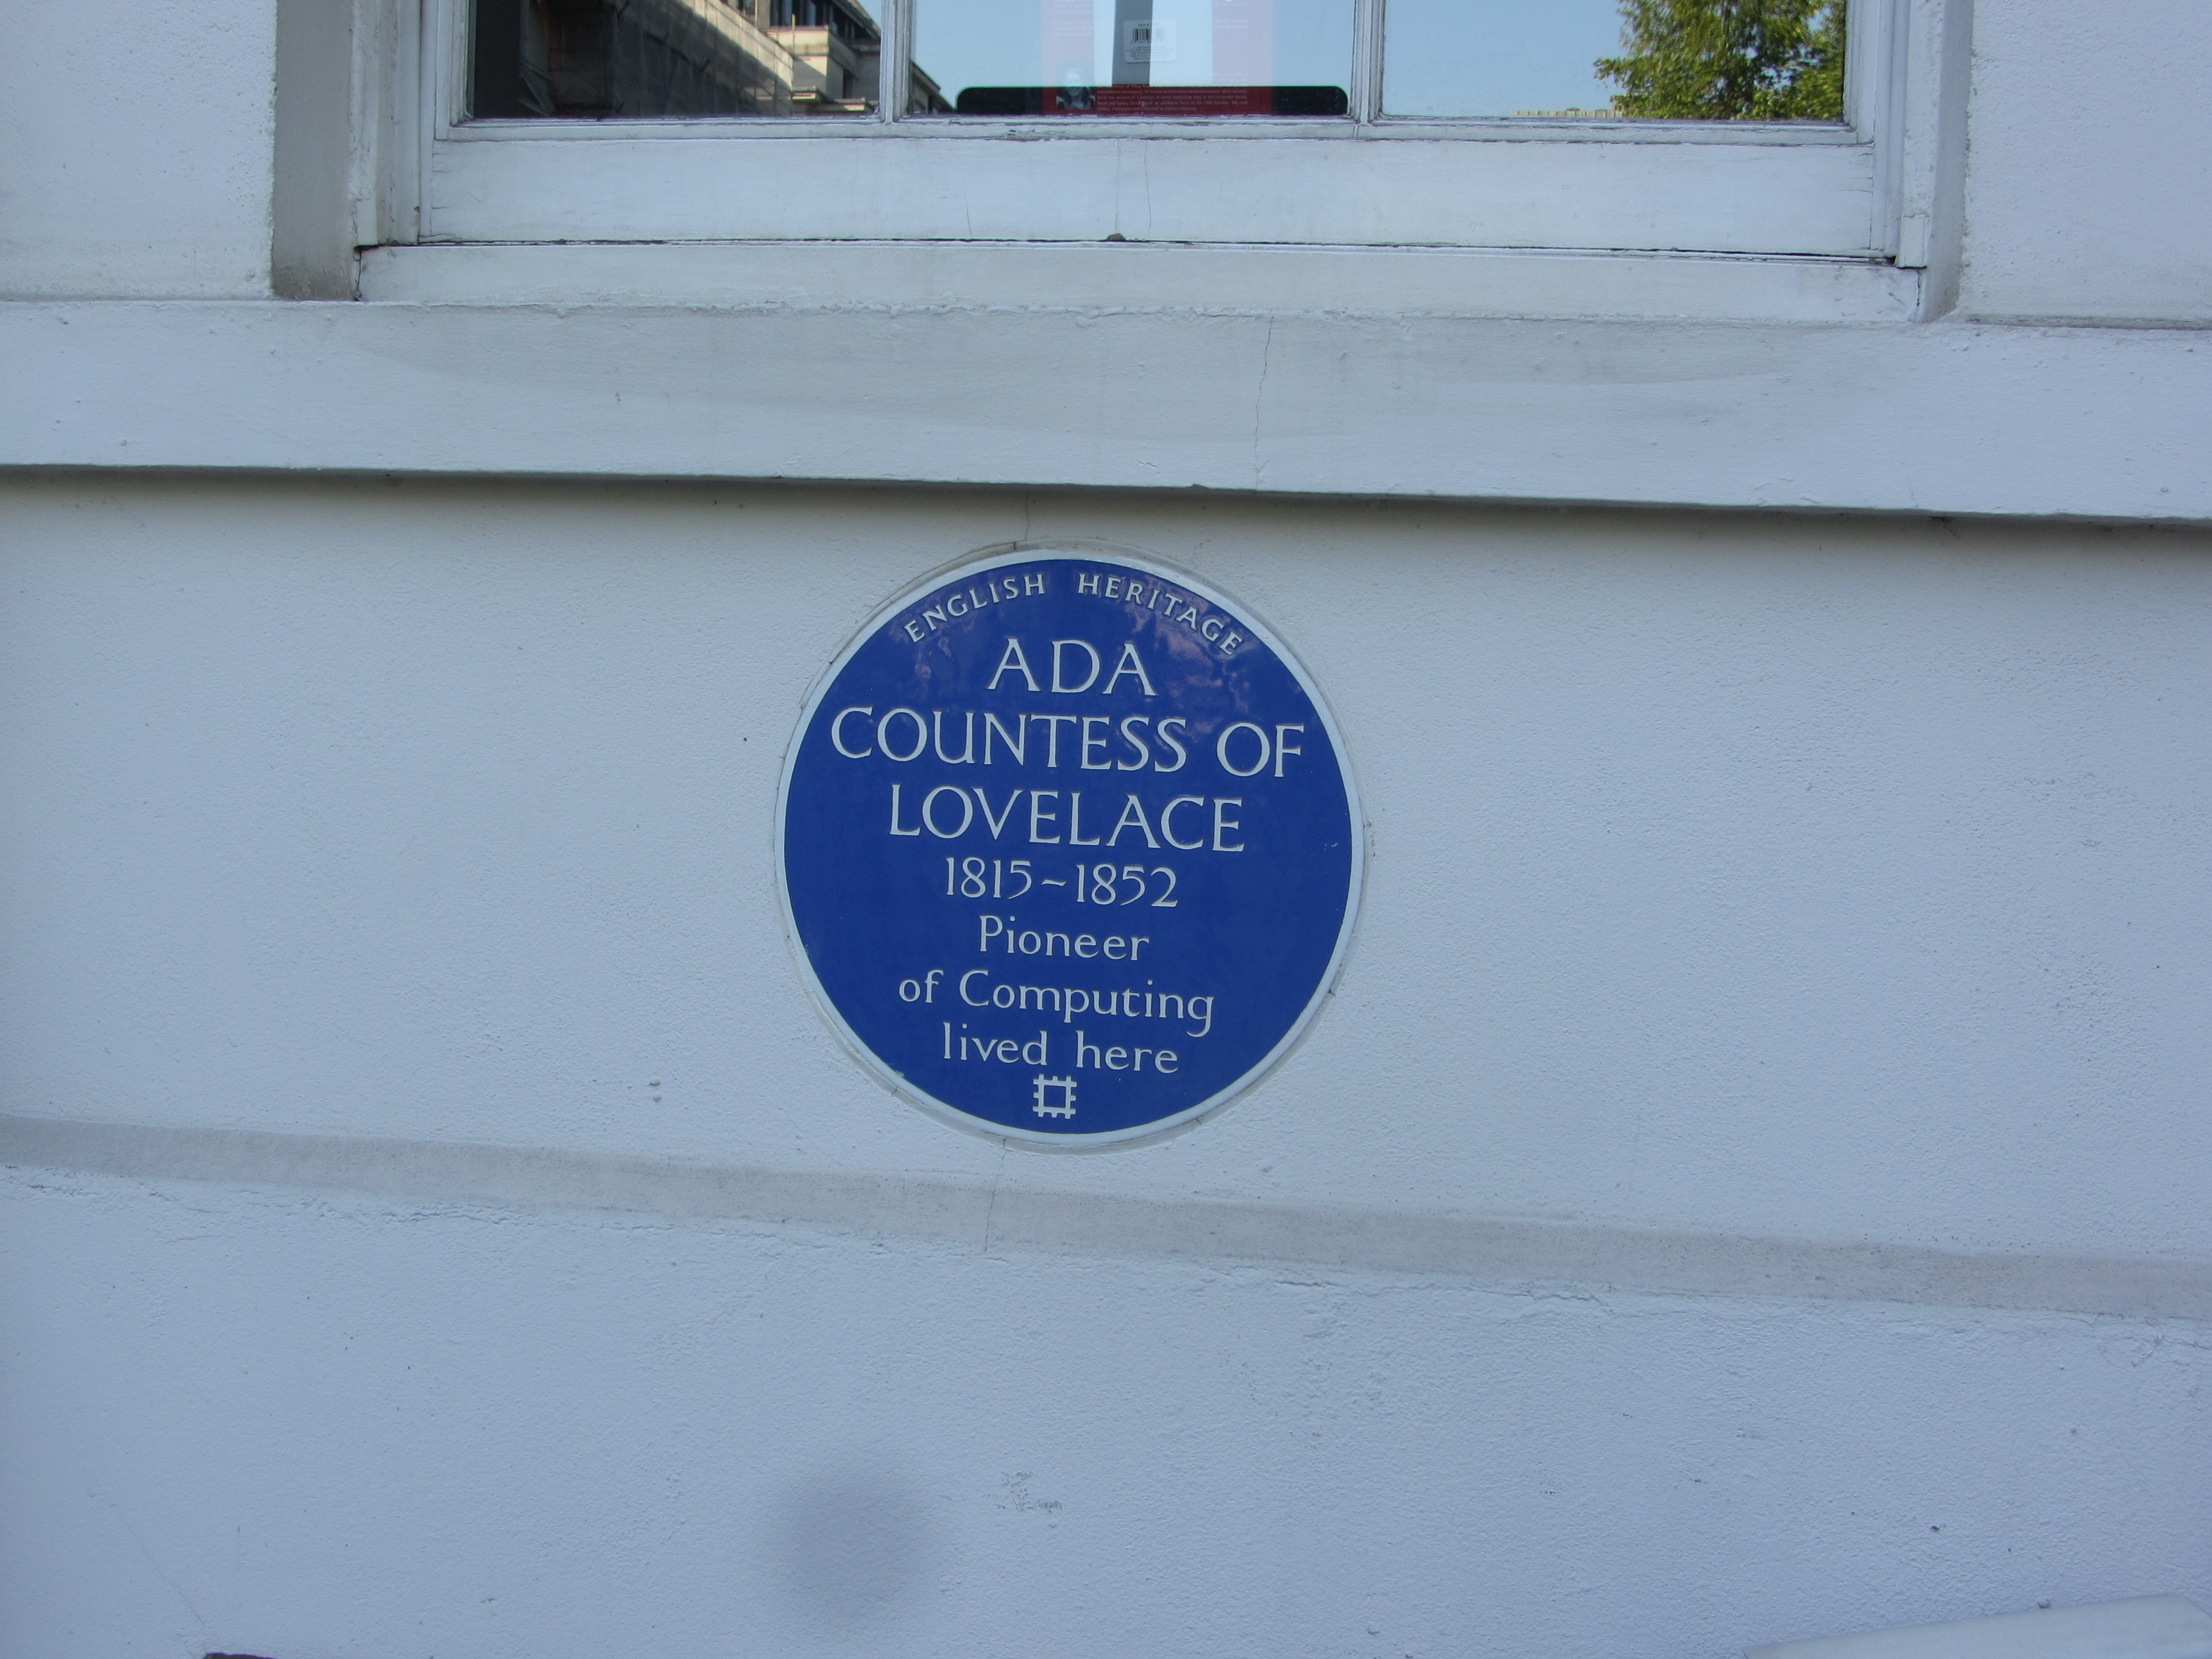 ada lovelace and father of computing relationship